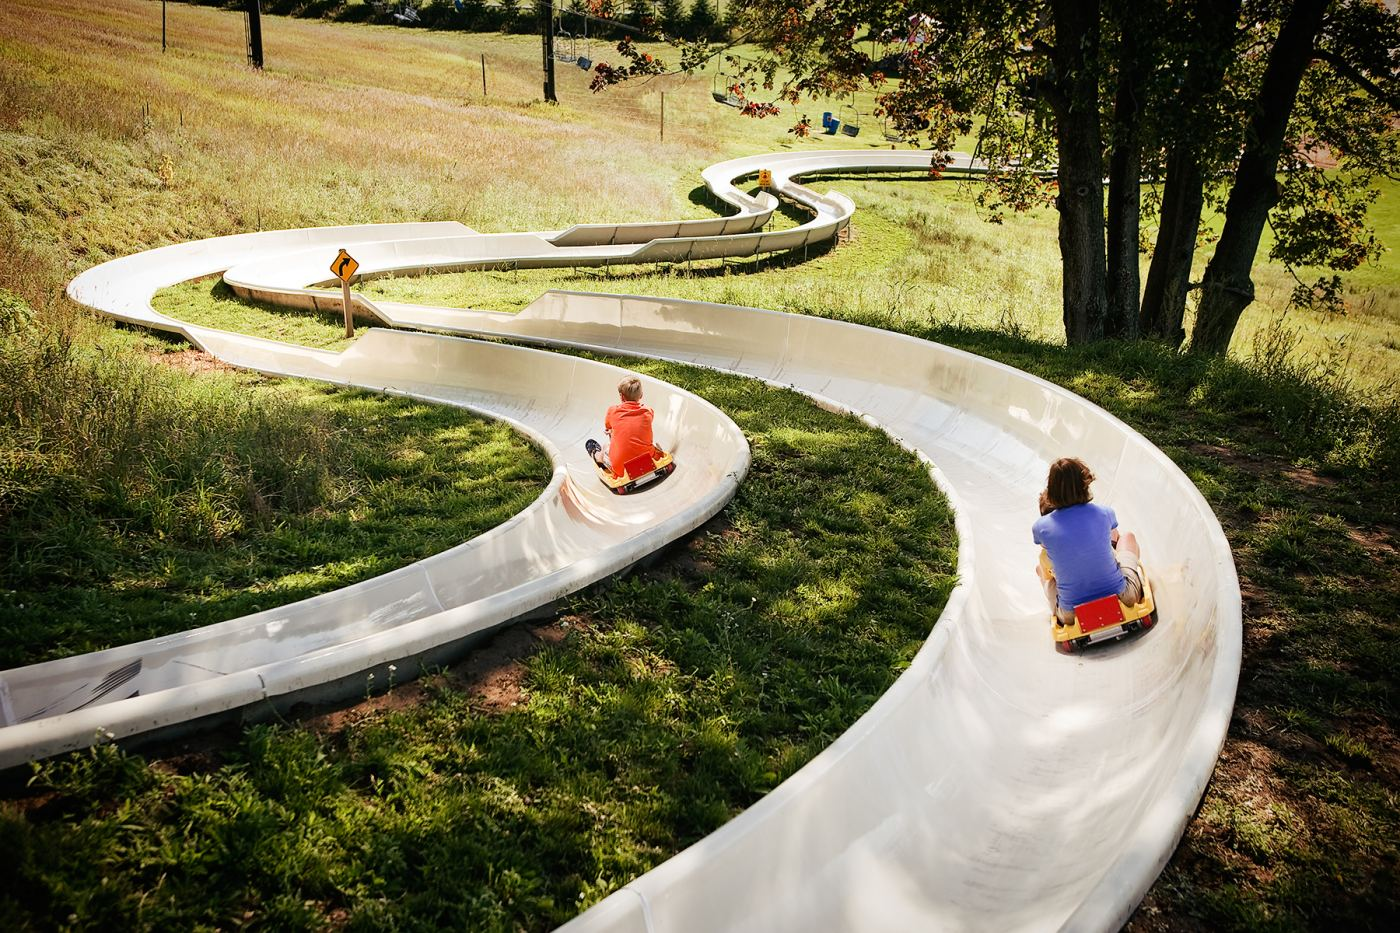 Michigan's only Alpine slide at Crystal Mountain resort